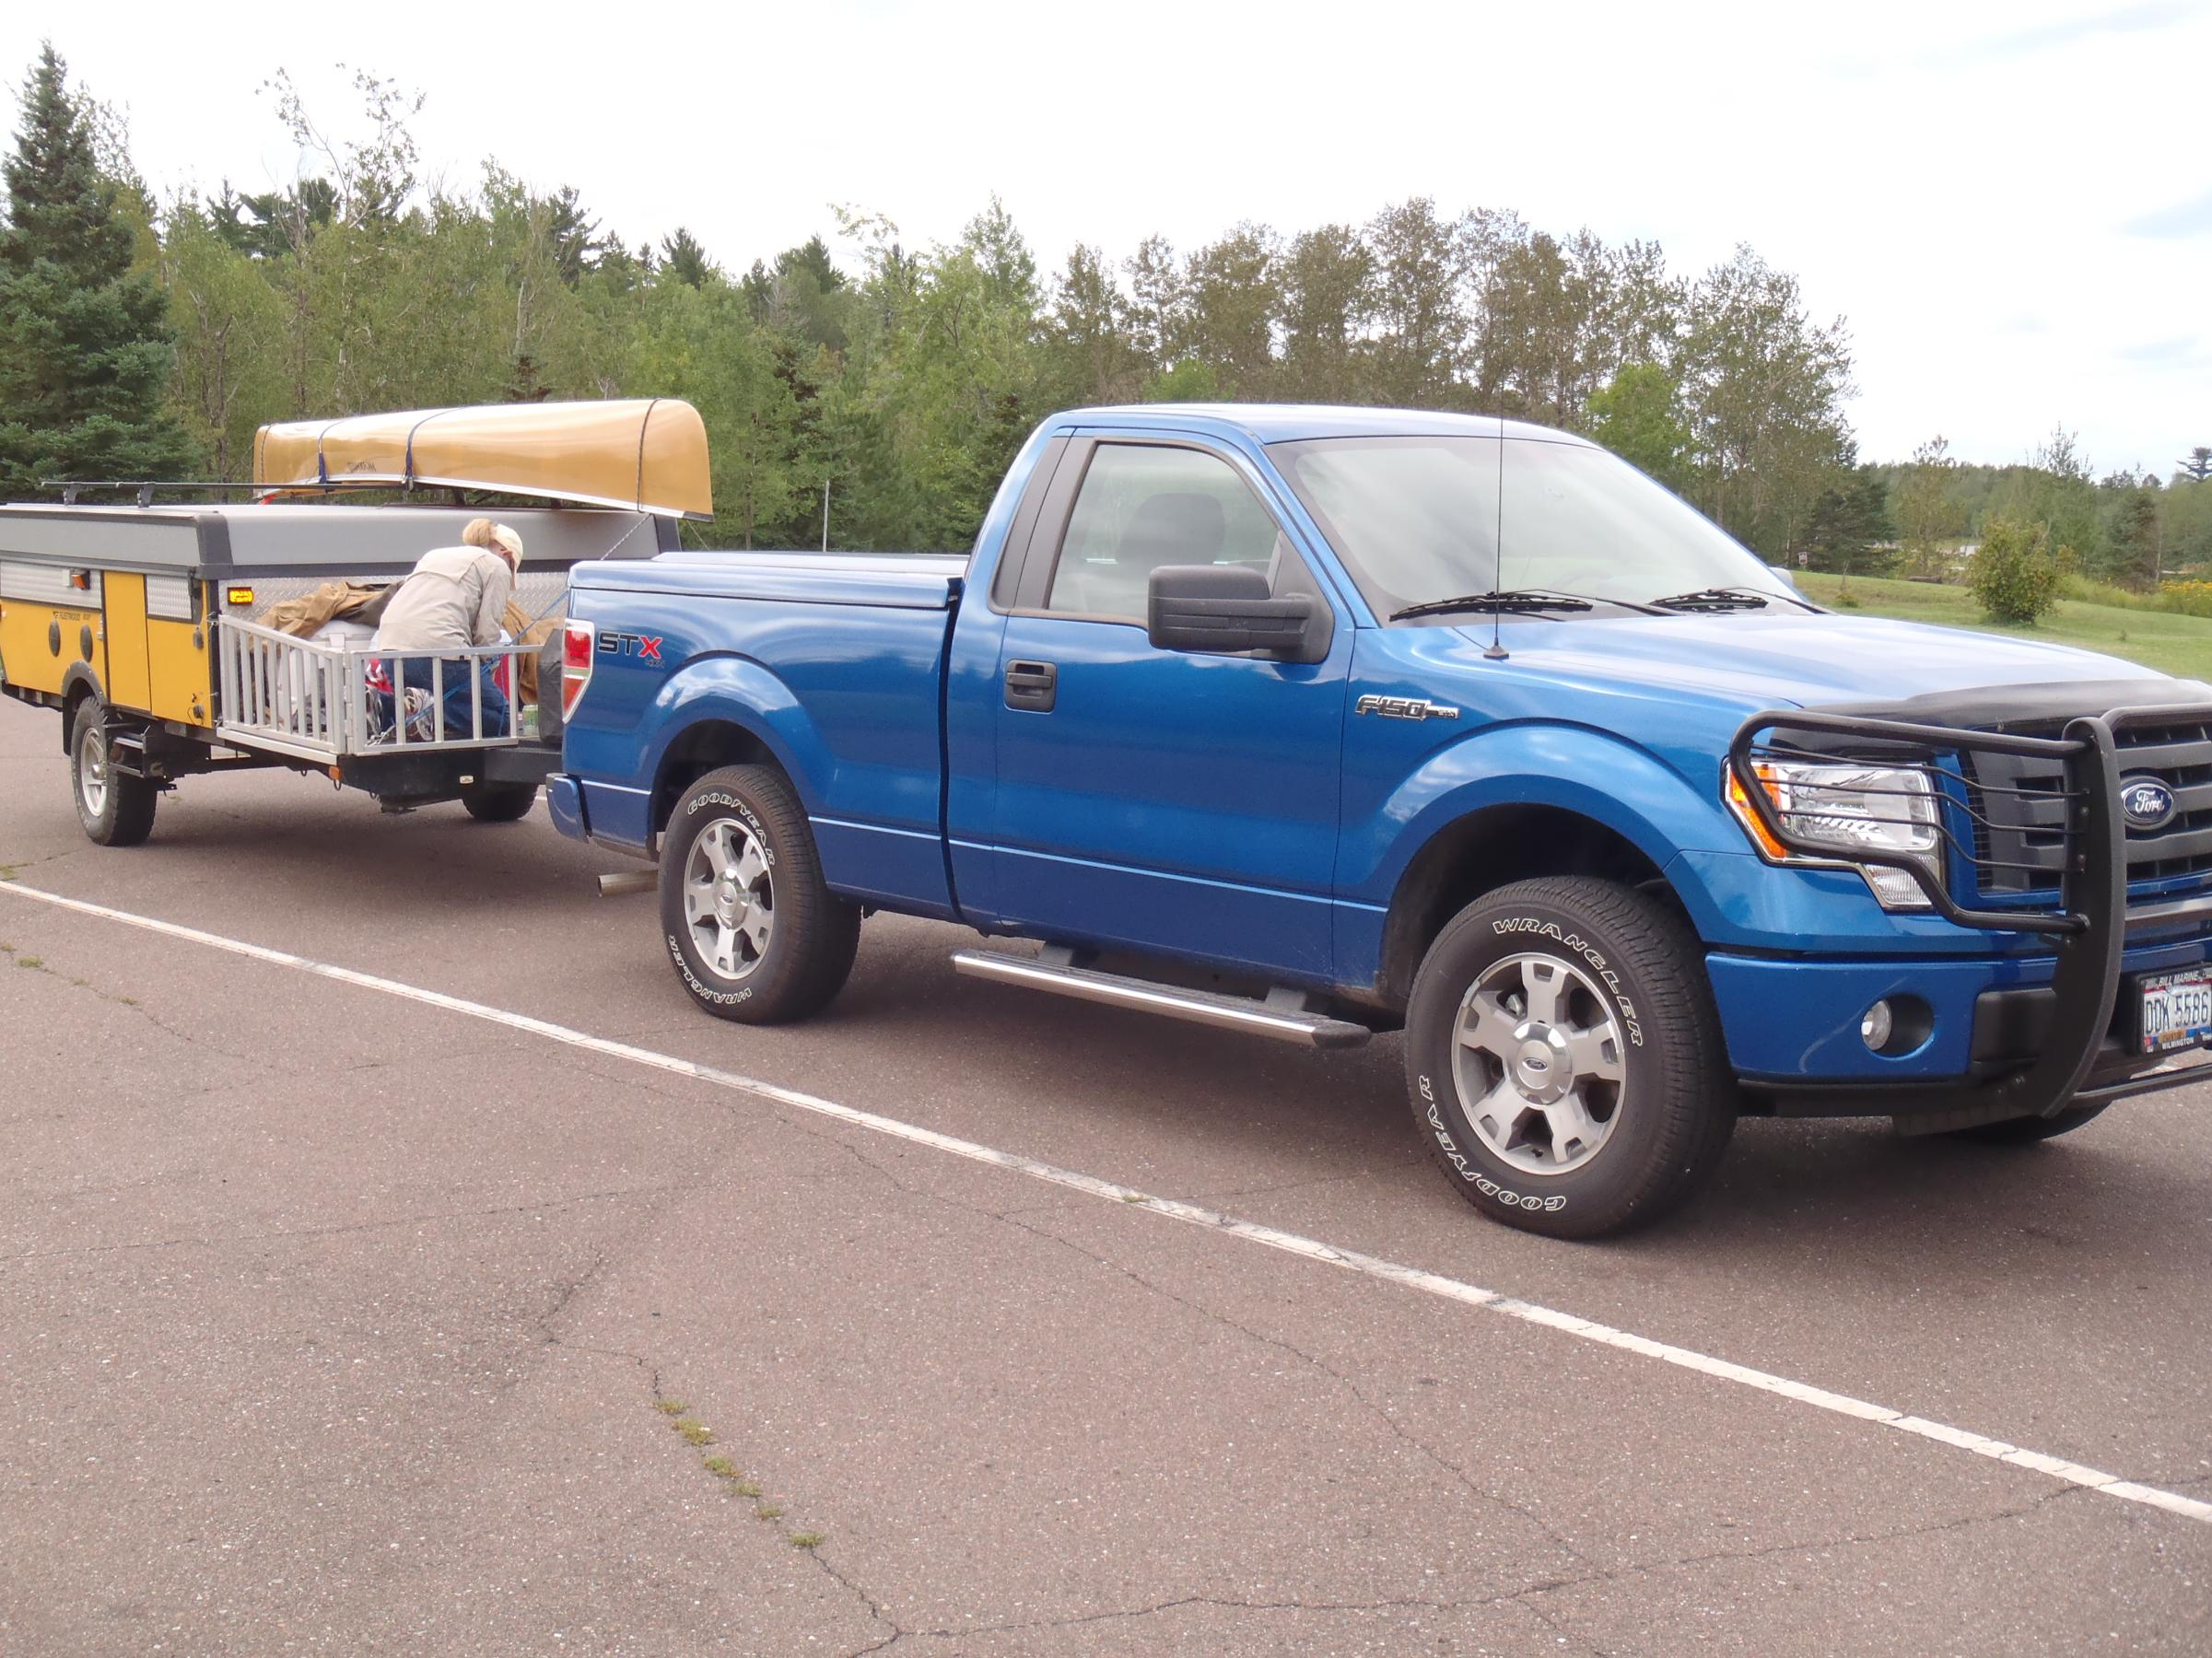 BWCA Hauling Canoes Cost MPG\'s? Boundary Waters Listening Point ...